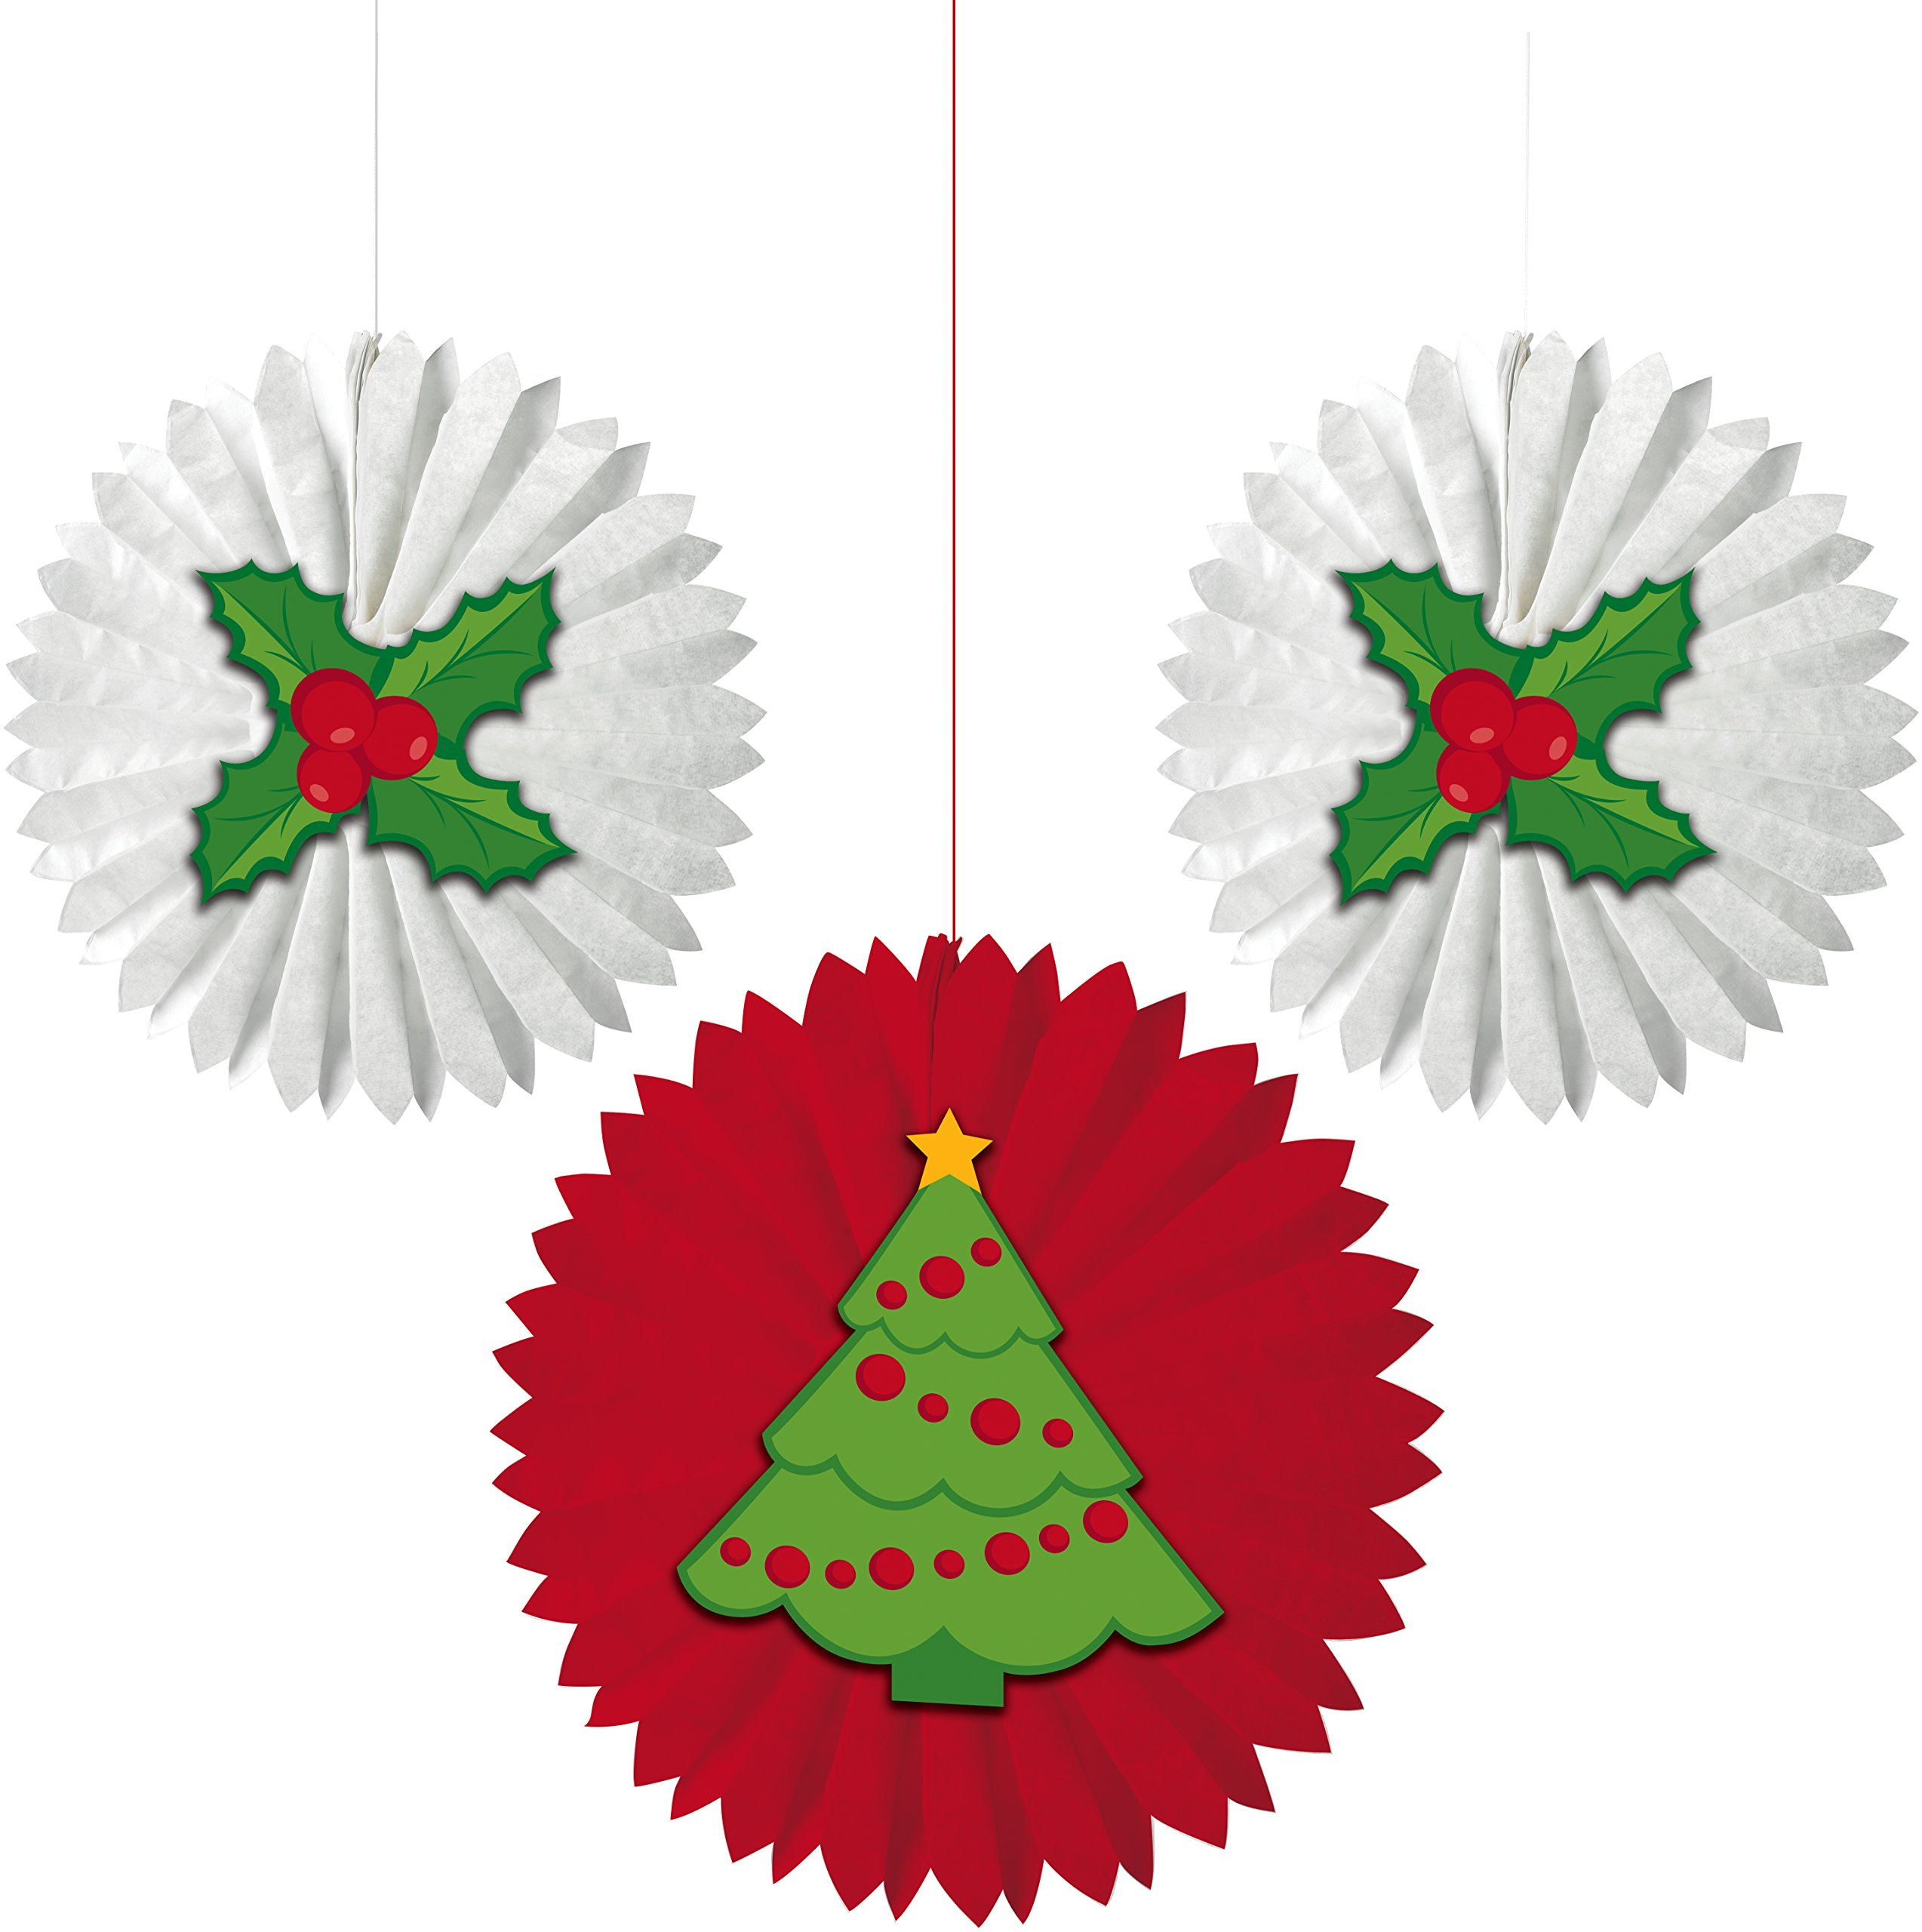 Creative Converting 3 Fans Christmas Tissue Fans with Attachments, Christmas Tree and Holly, Red/White/Green by Creative Converting